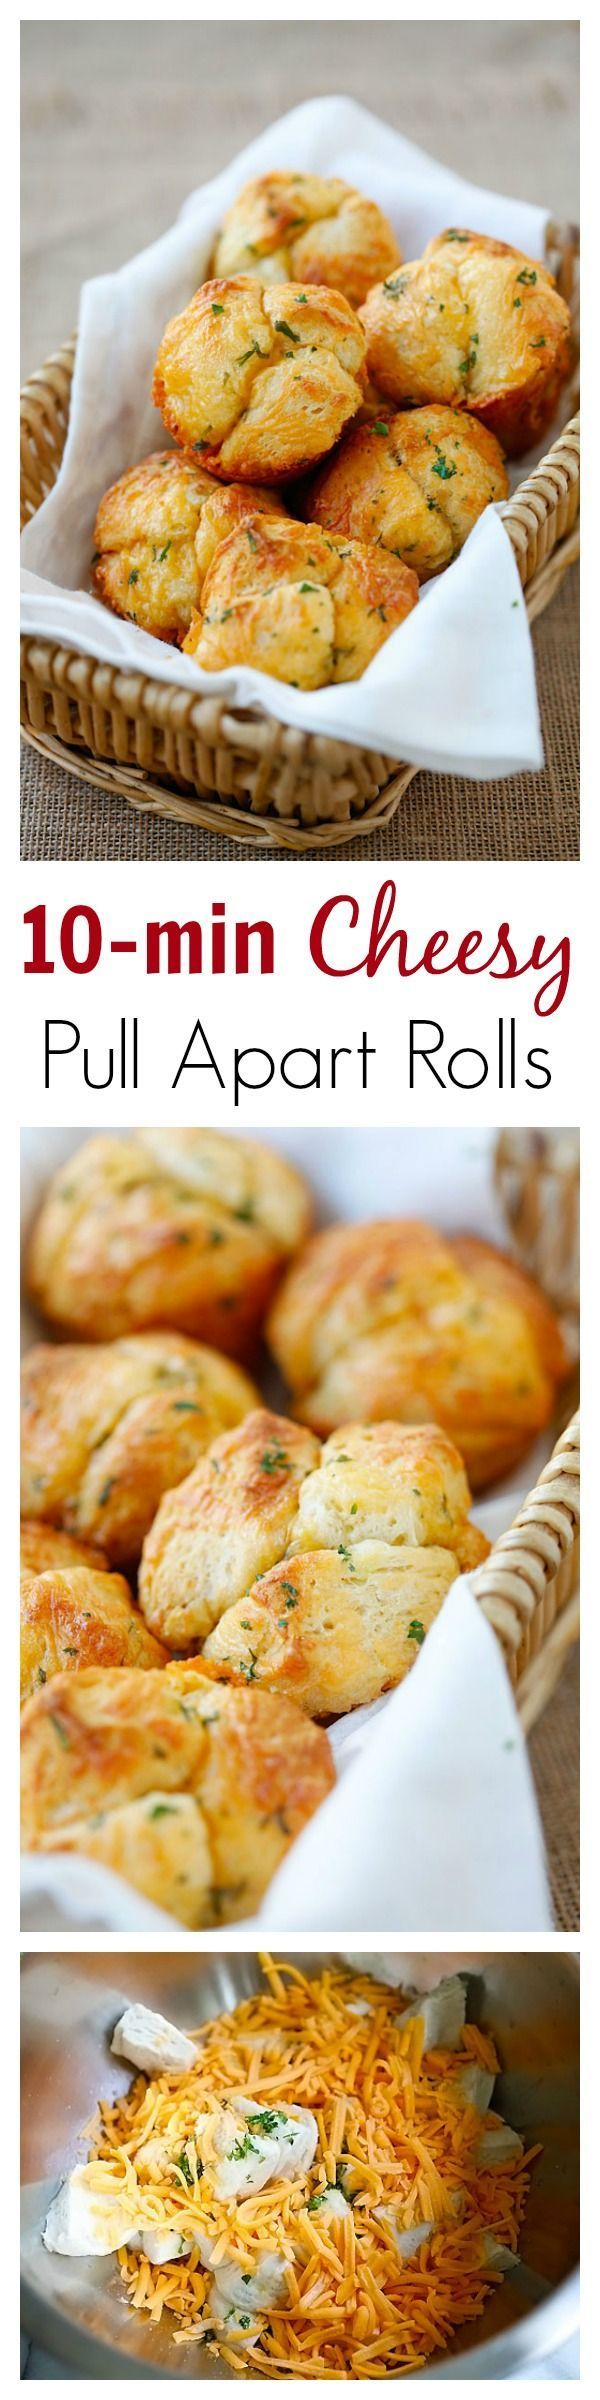 Easy Cheesy Pull-Apart Rolls – 10 mins pull-apart rolls recipe that is loaded with cheddar cheese and butter, soft, fluffy, and super yummy | http://rasamalaysia.com /familyfresh/